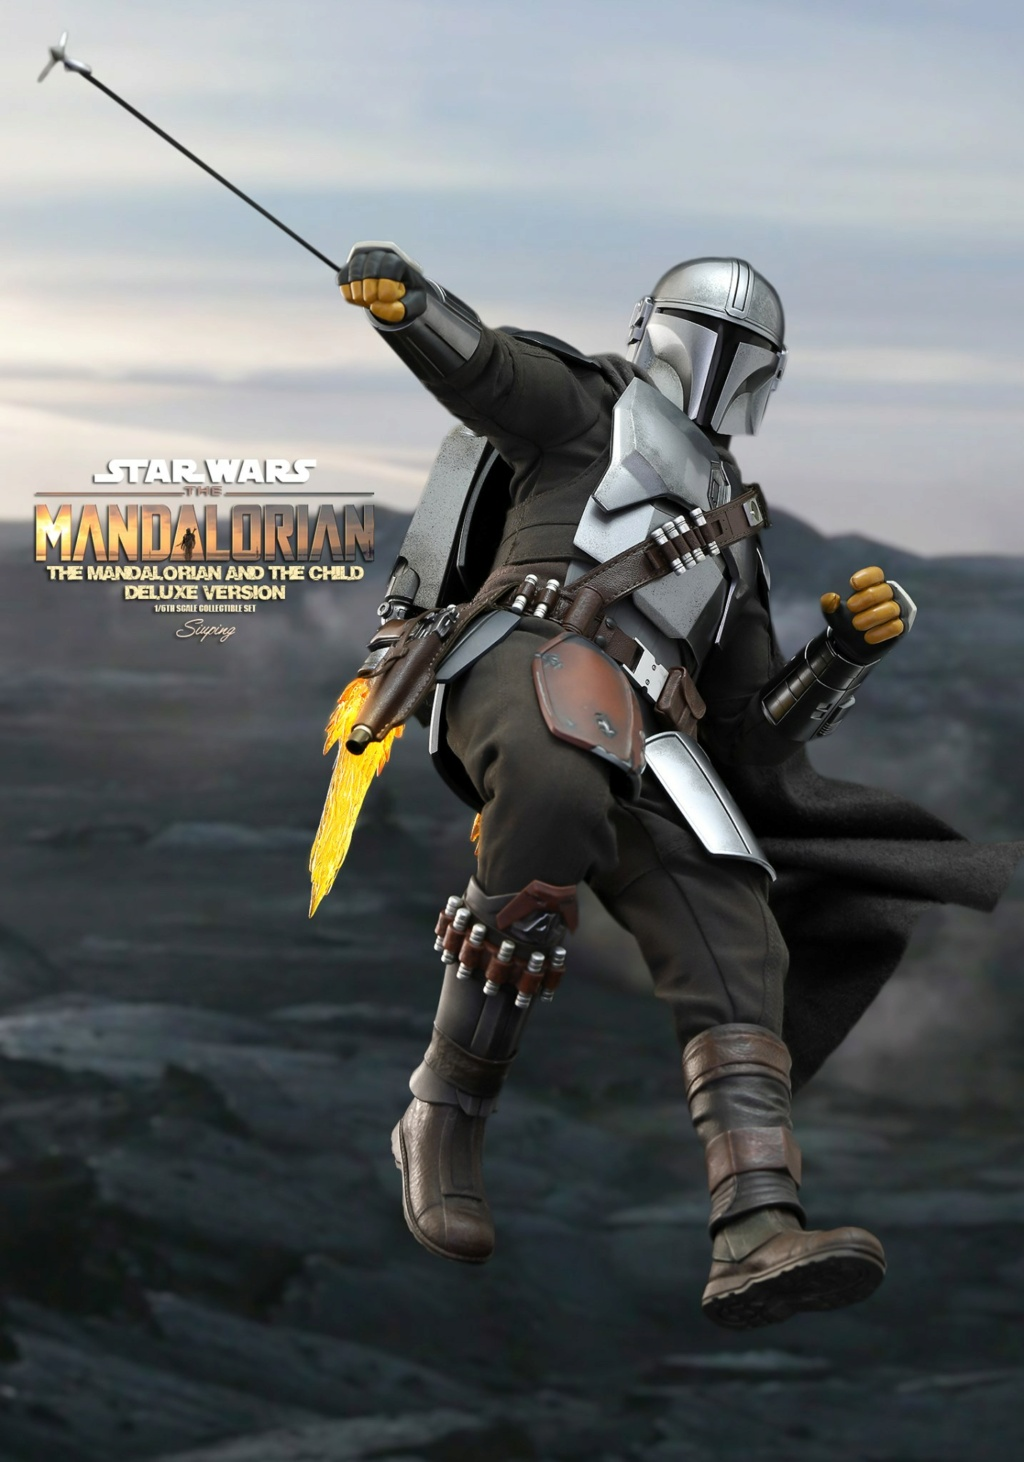 Sci-Fi - NEW PRODUCT: HOT TOYS: THE MANDALORIAN THE MANDALORIAN AND THE CHILD 1/6TH SCALE COLLECTIBLE SET (Standard and Deluxe) 24181e10